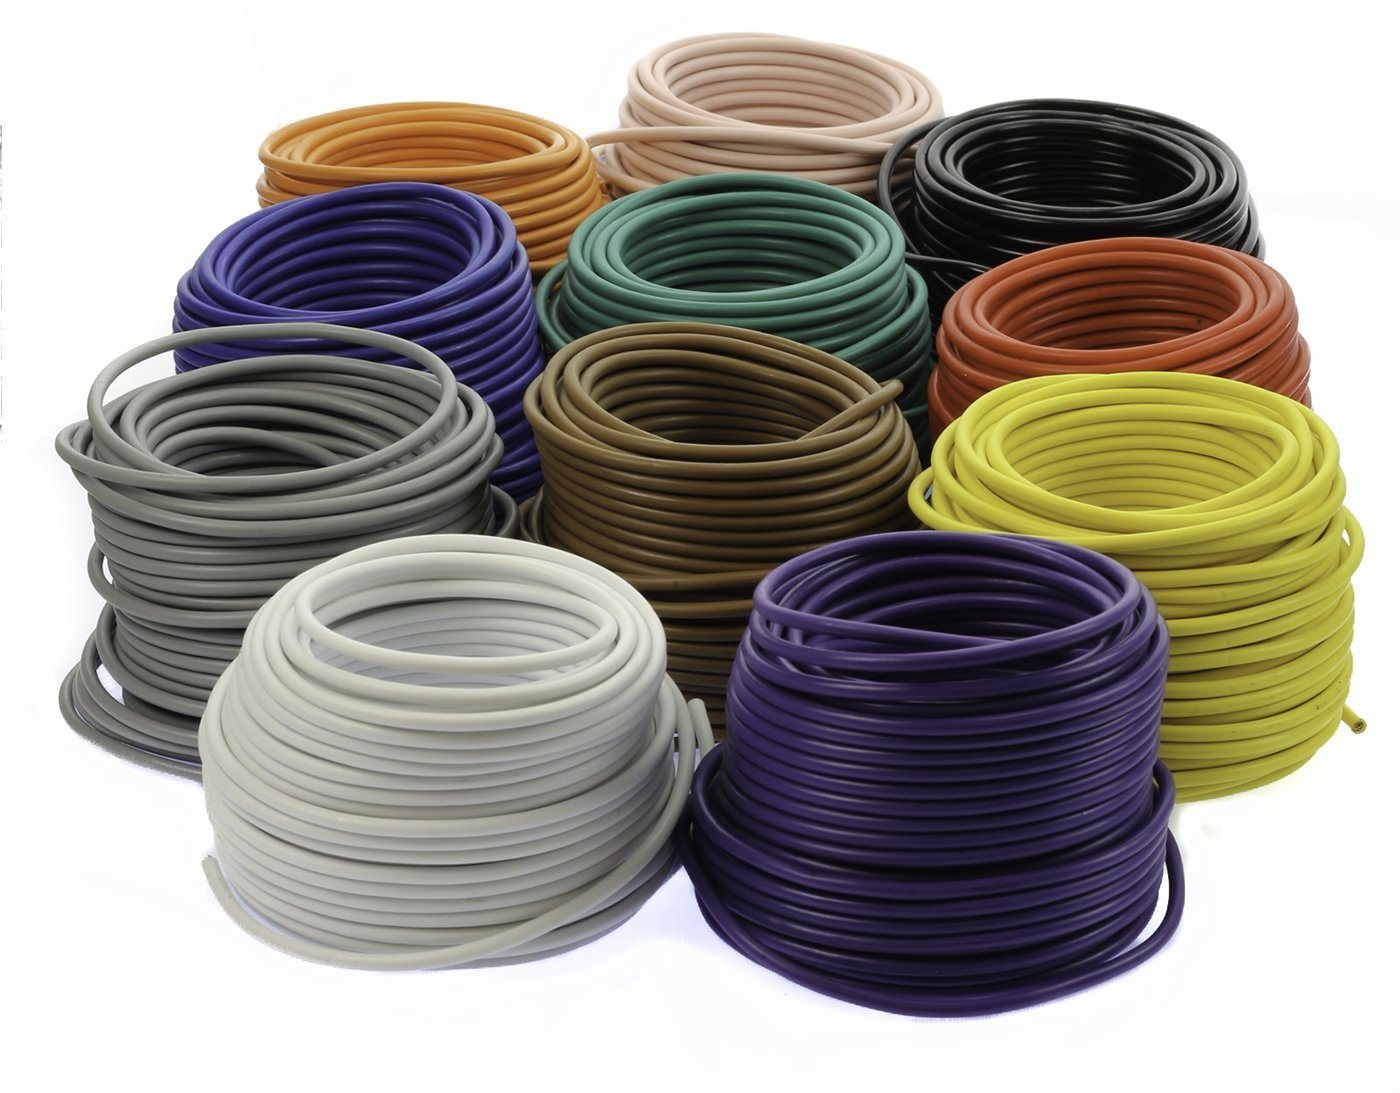 VOODOO 11 Colors Rolls 50' Feet 16 AWG Gauge Primary Remote Wire Power Cable Stranded